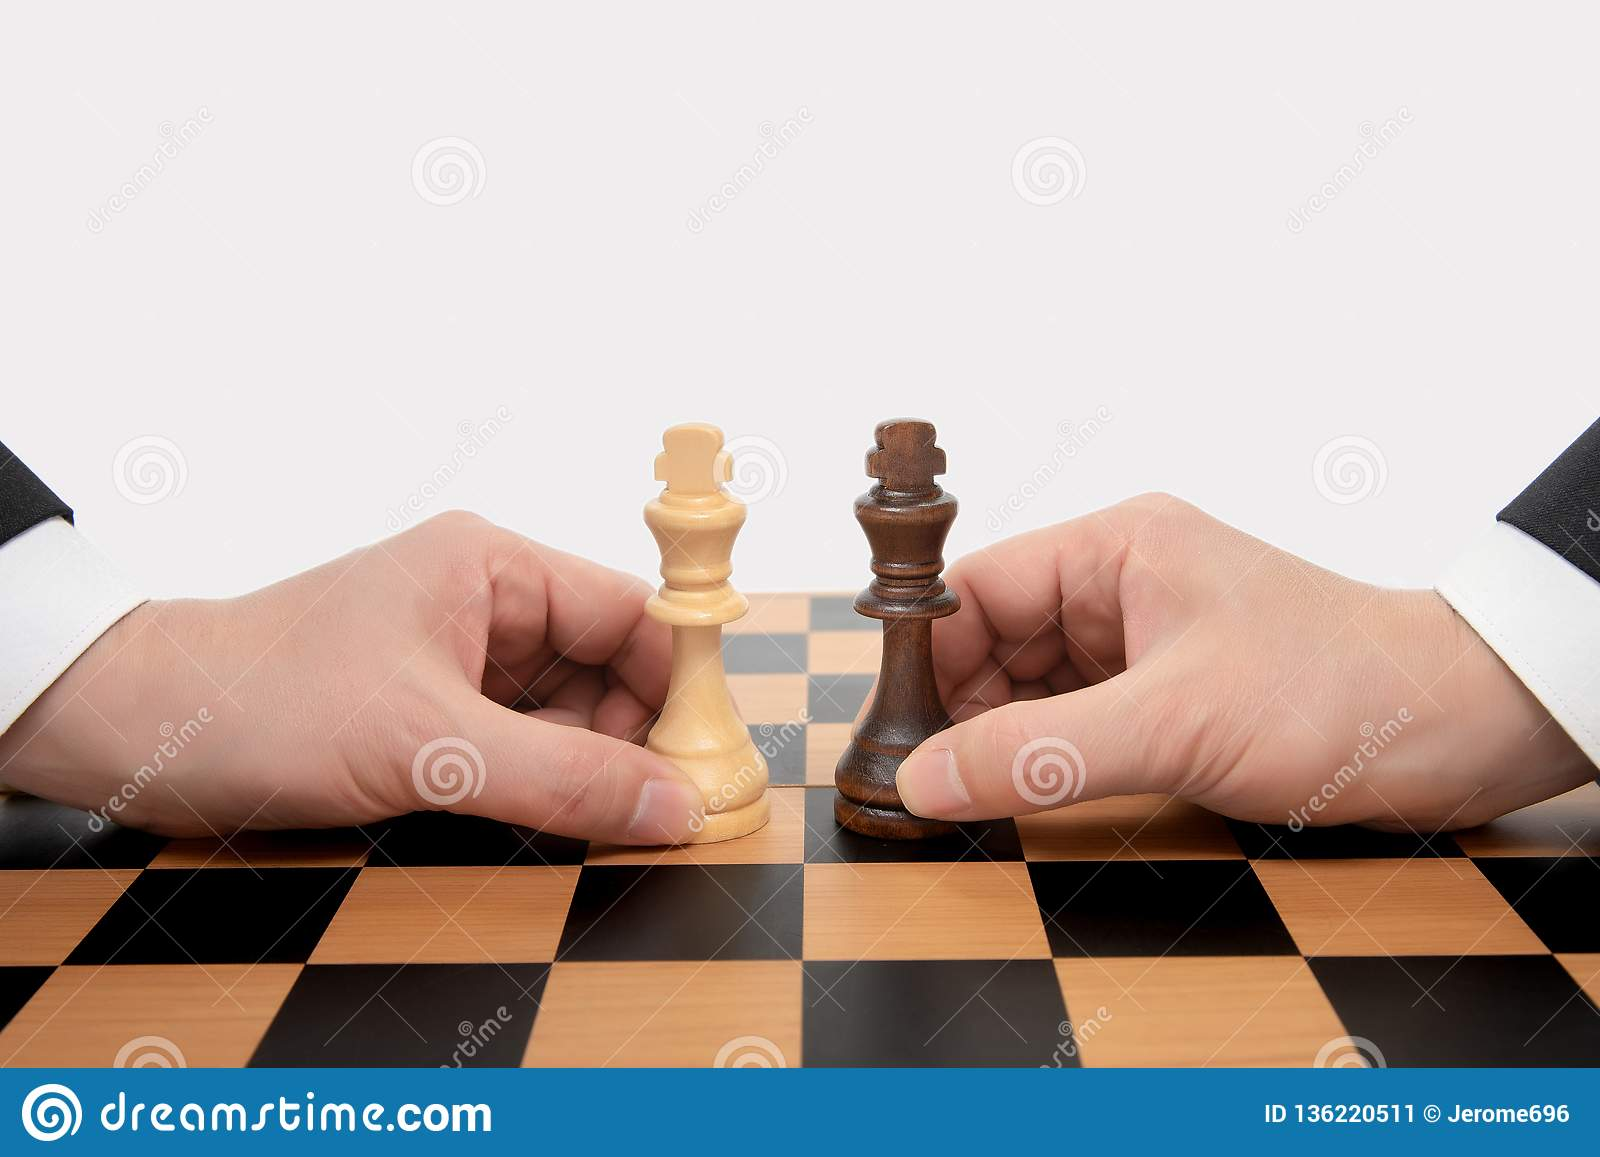 Hand of a moving businessman holding a king chess piece. Business Negotiation Concept